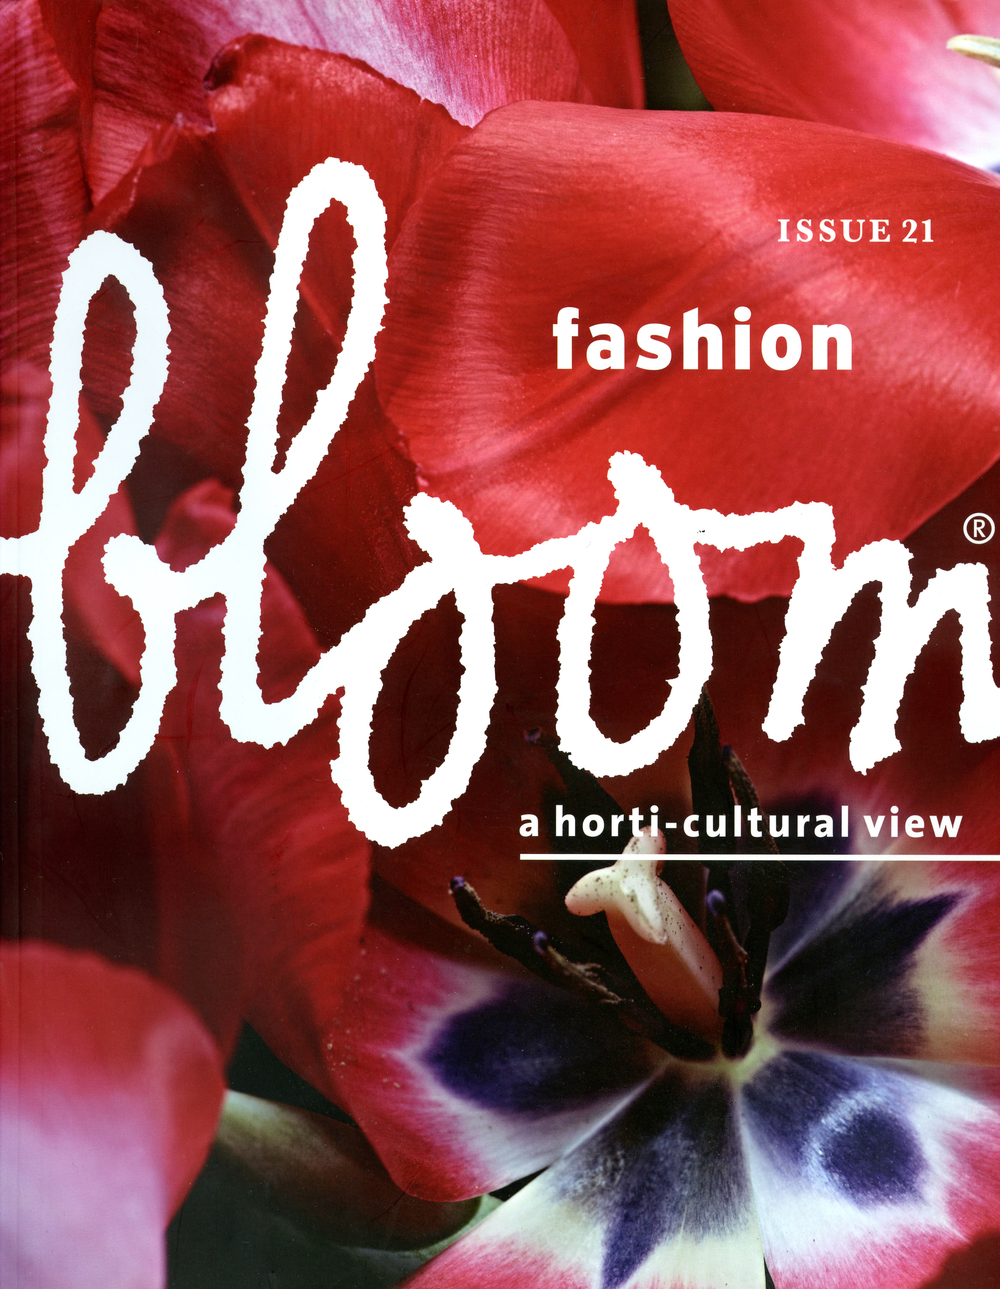 fashion bloom, issue 21 - scan 1.jpg